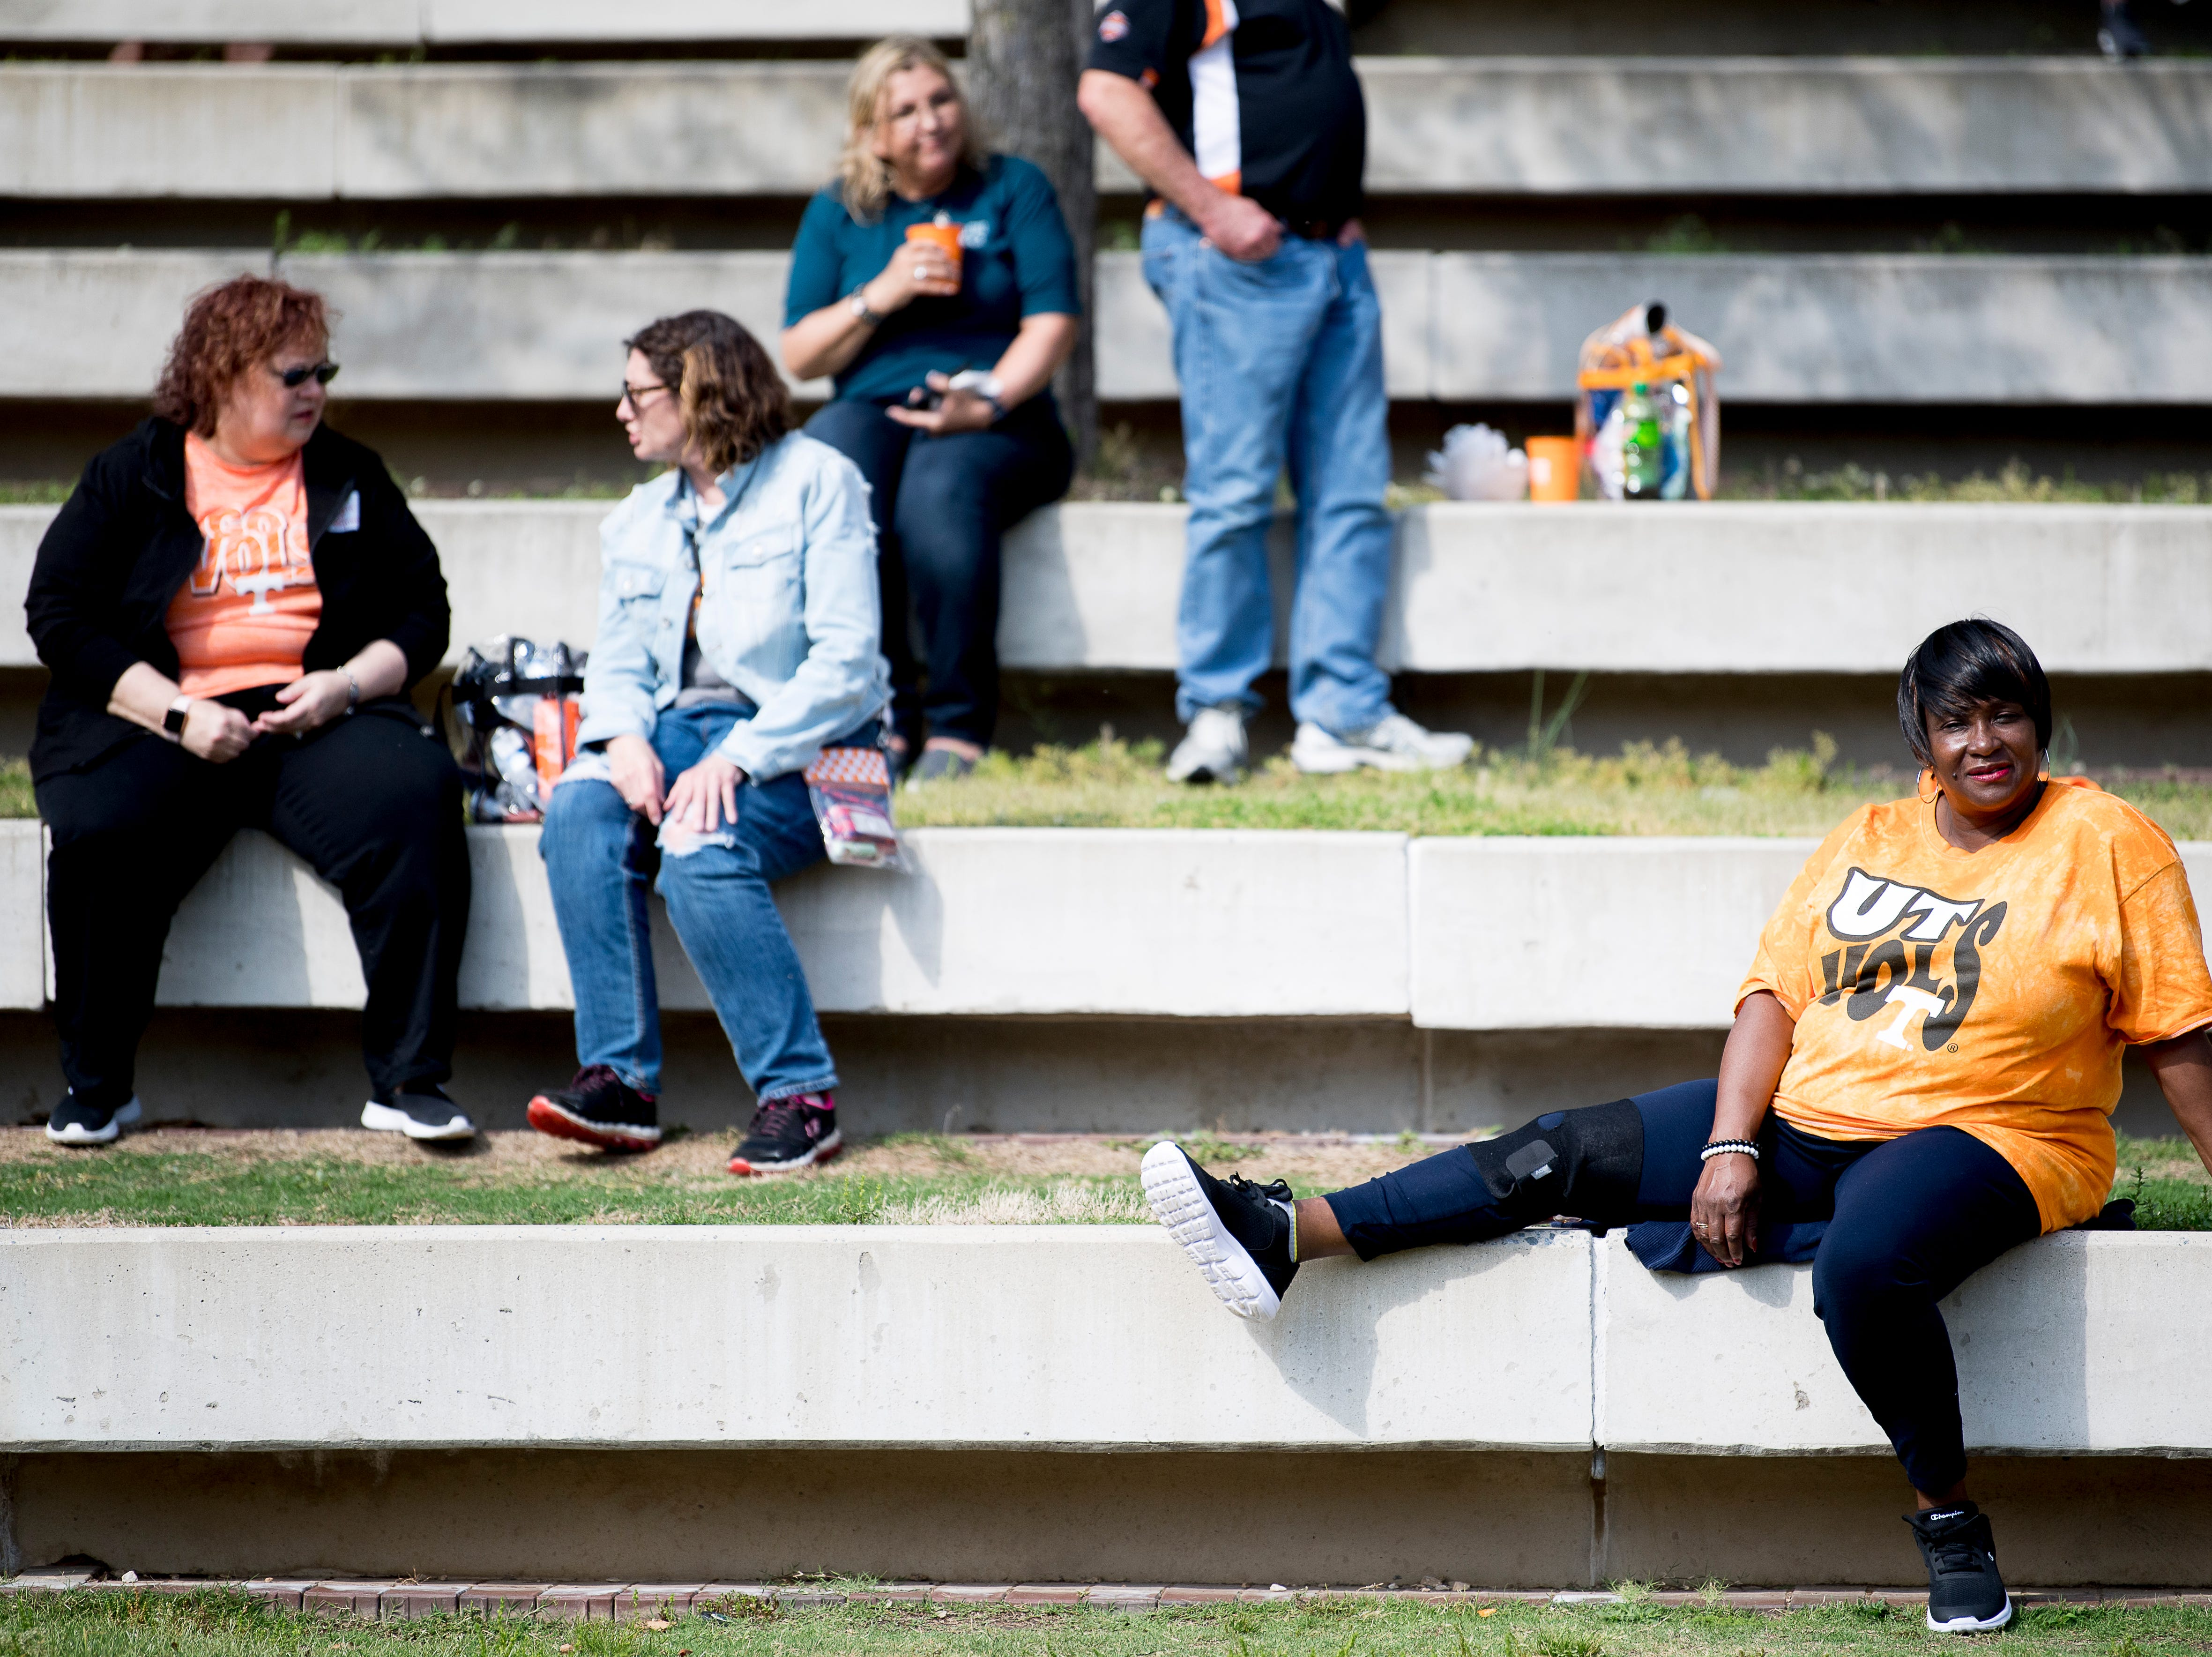 Fans sit in the shade at the Tennessee Spring Game at Neyland Stadium in Knoxville, Tennessee on Saturday, April 13, 2019.